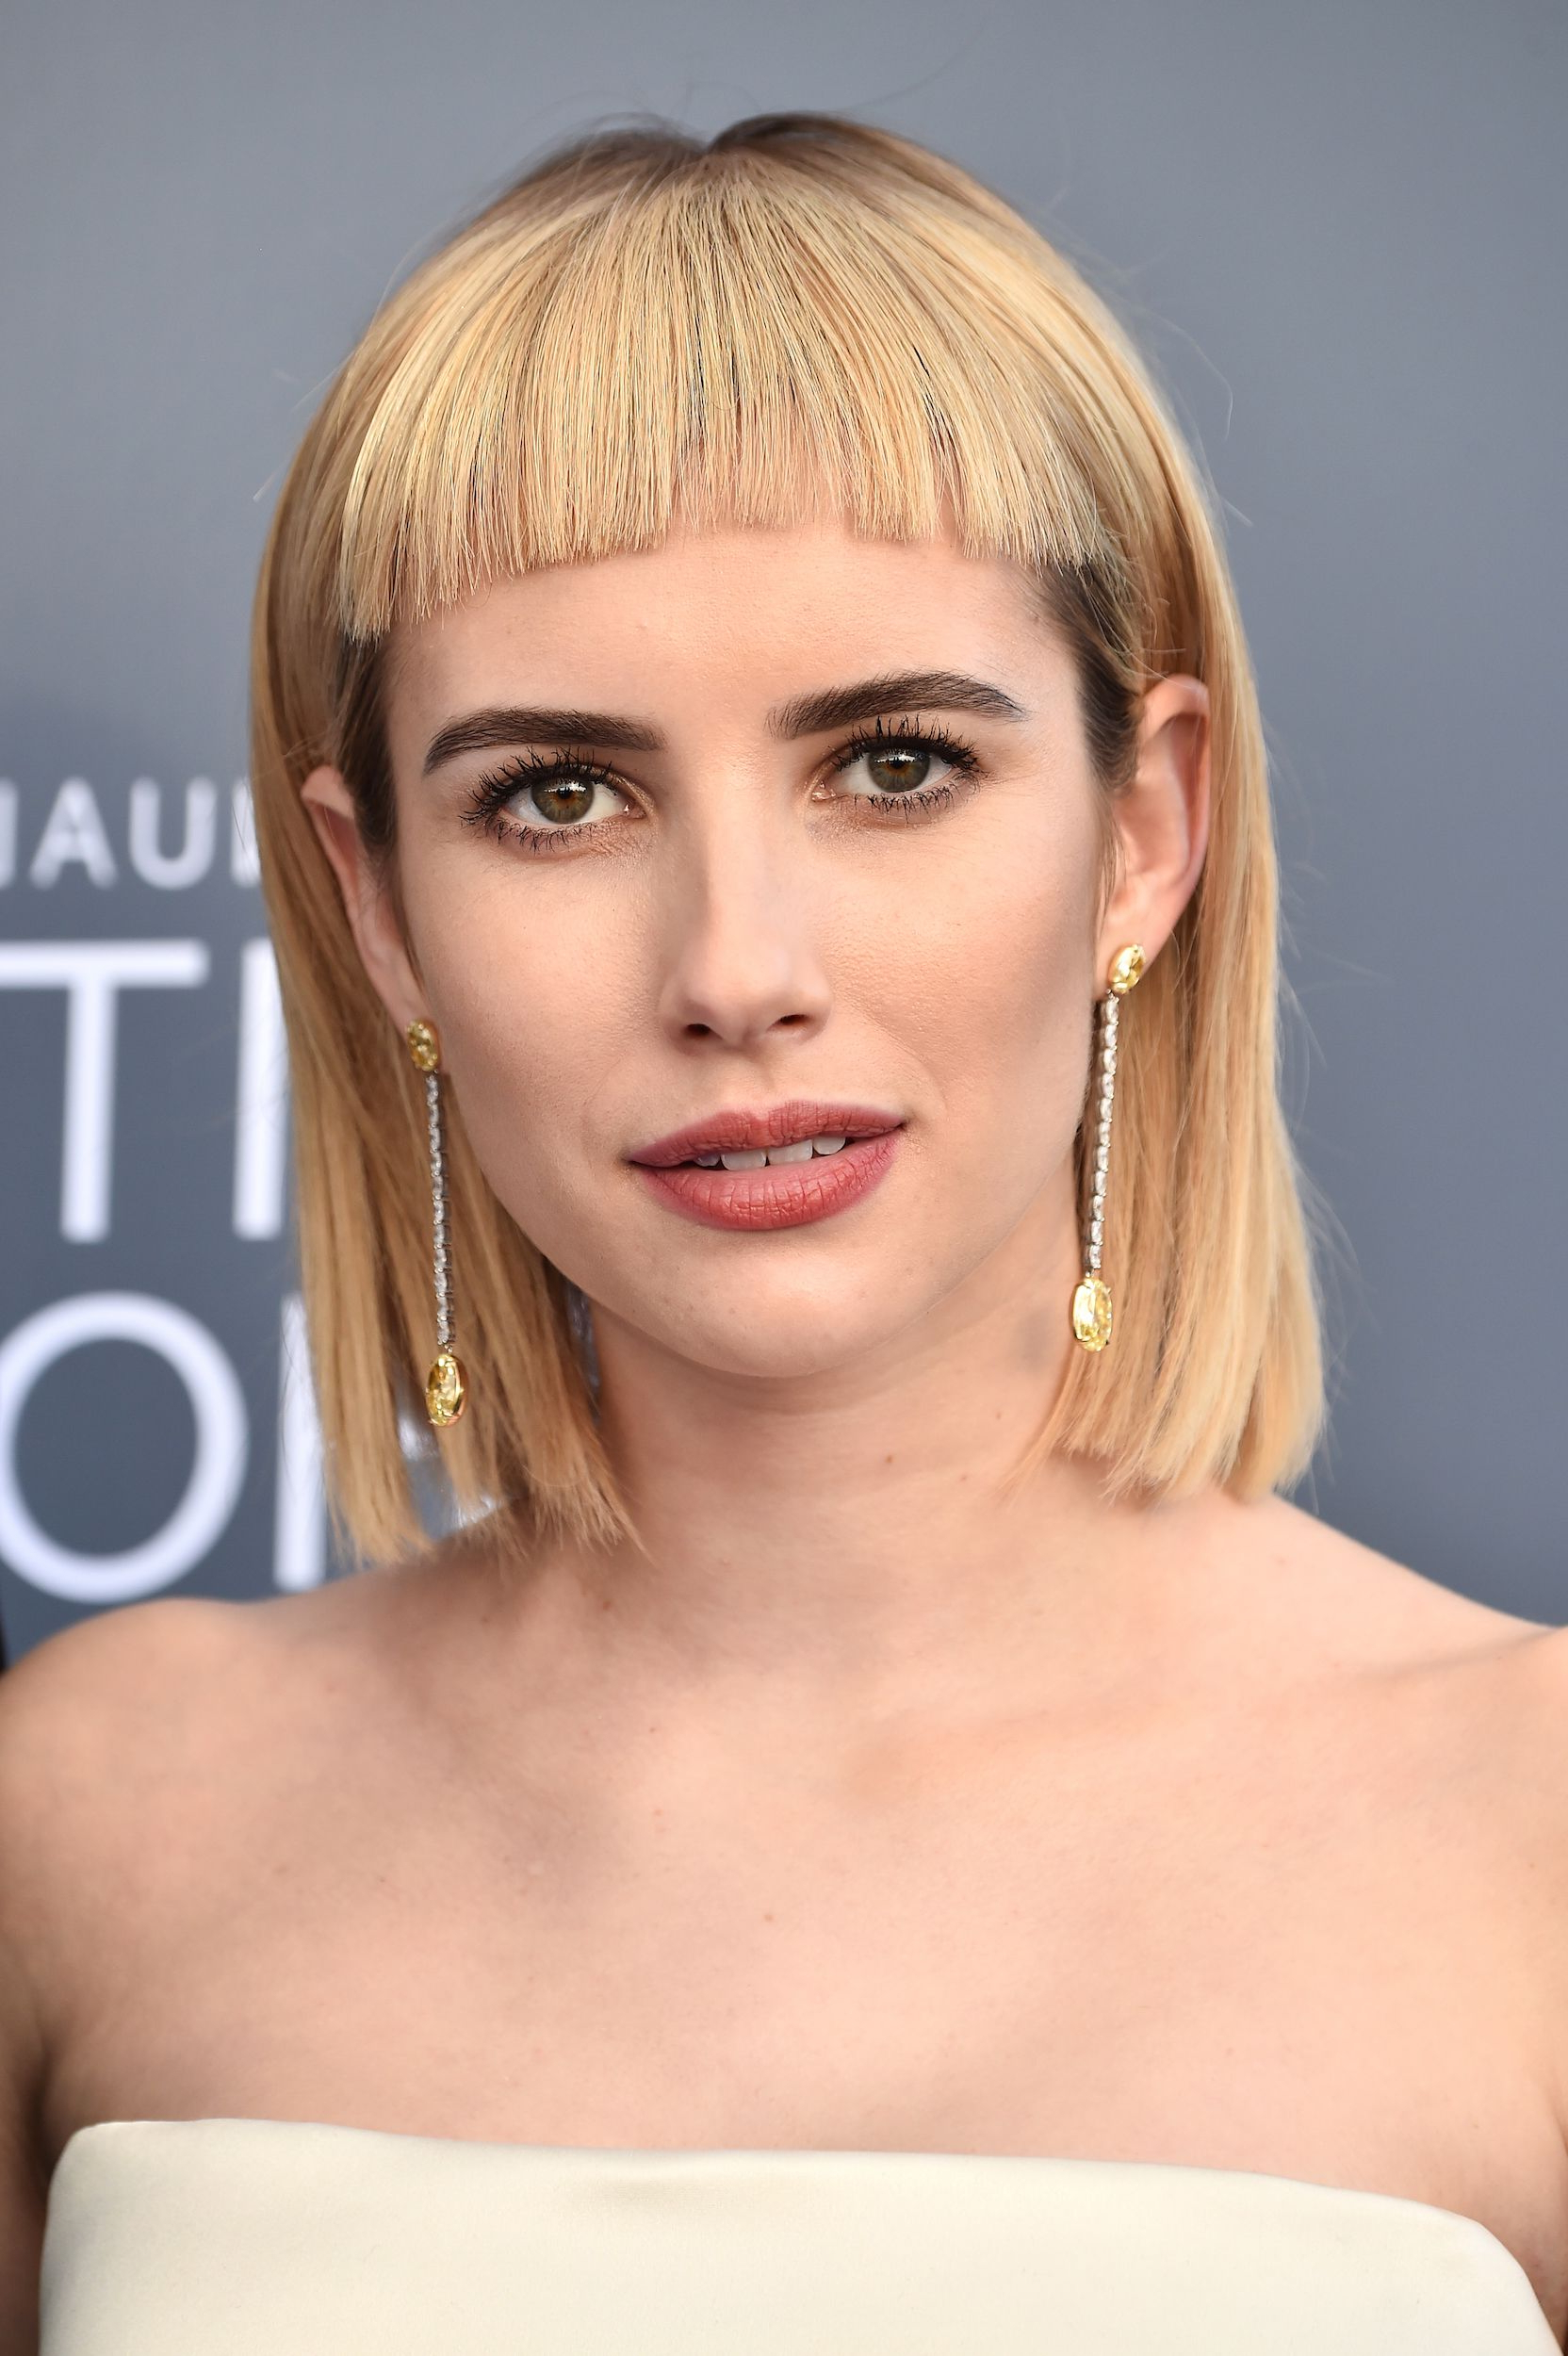 Trendy Stylish Updos With Puffy Crown And Bangs With Regard To 35 Best Hairstyles With Bangs – Photos Of Celebrity Haircuts (View 17 of 20)